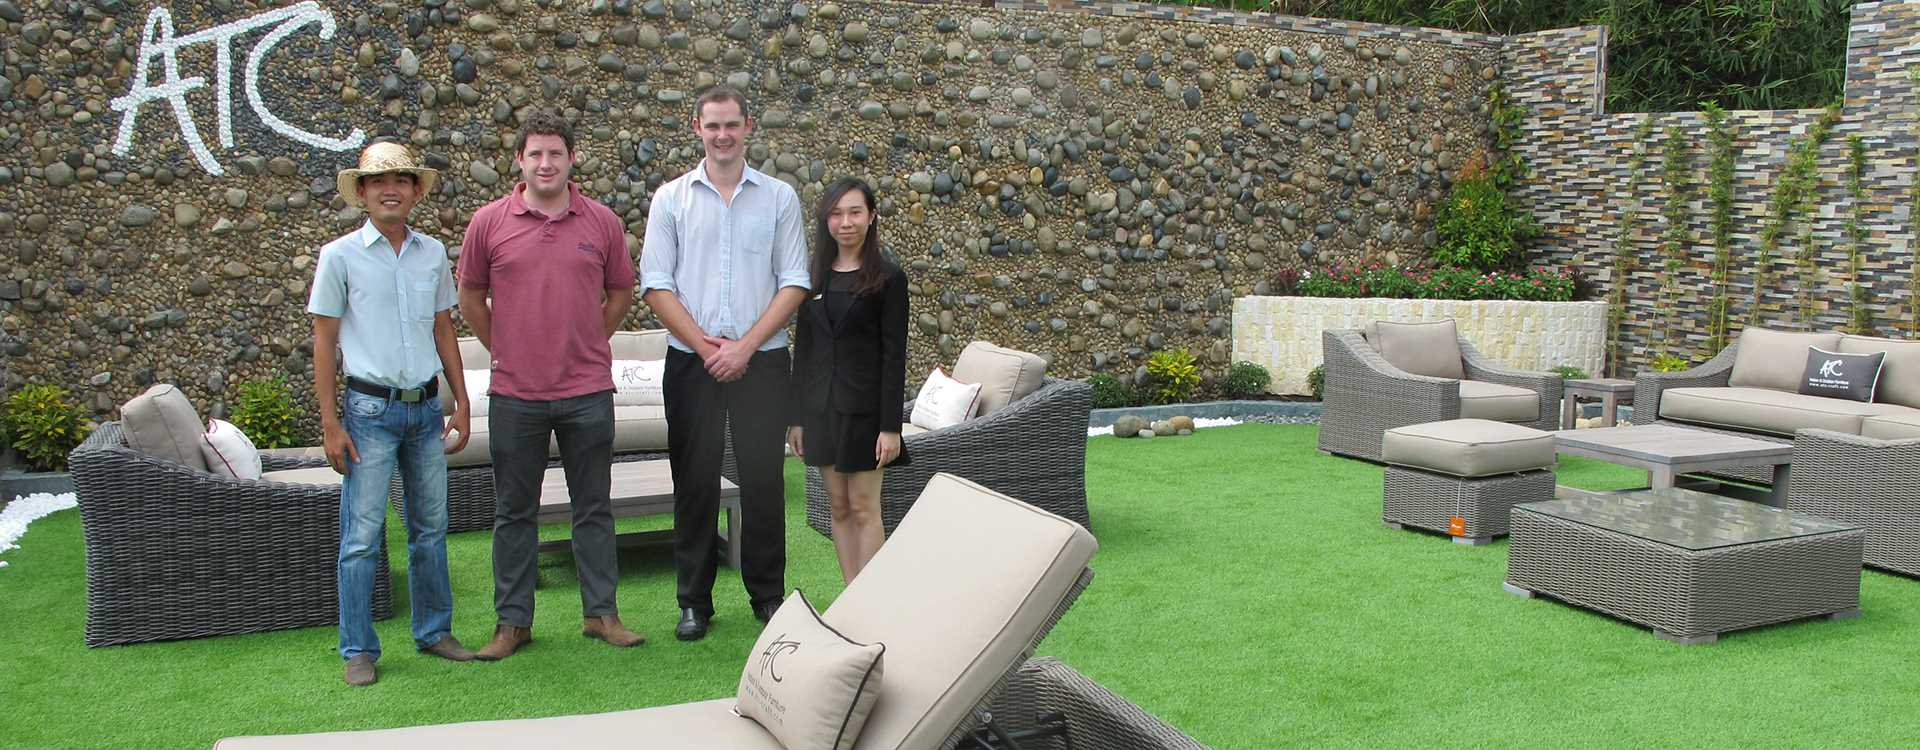 ATC Outdoor Wicker Furniture Manufacturer Client Visits Factory